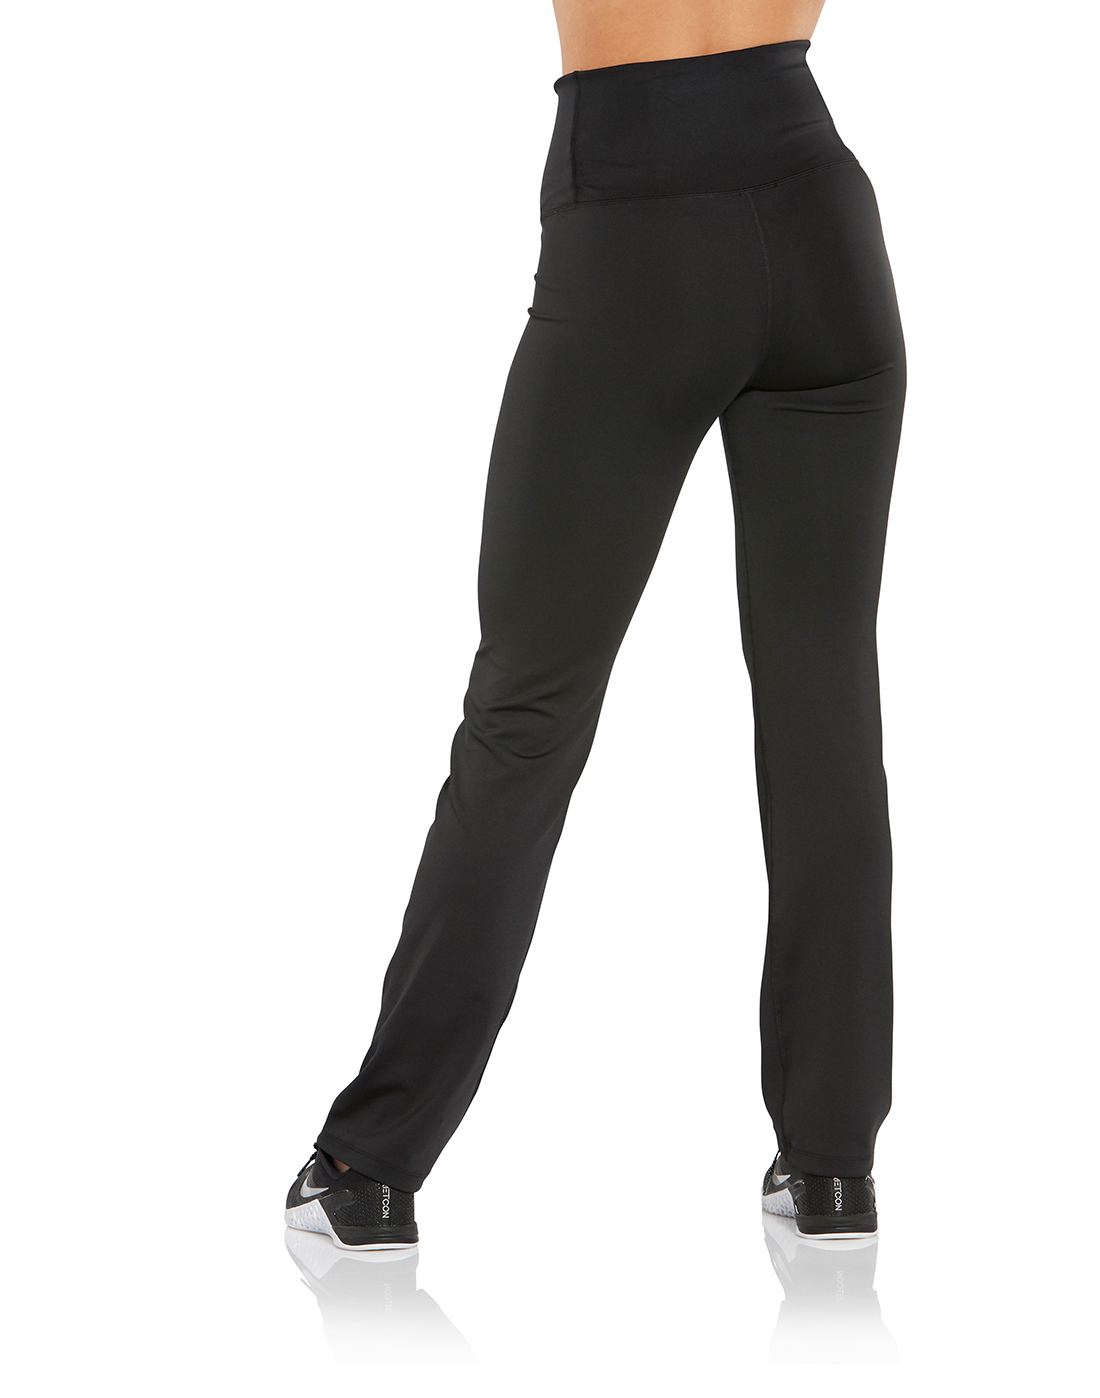 aa74b14b9954d Womens Power Classic Gym Pants · Womens Power Classic Gym Pants ...